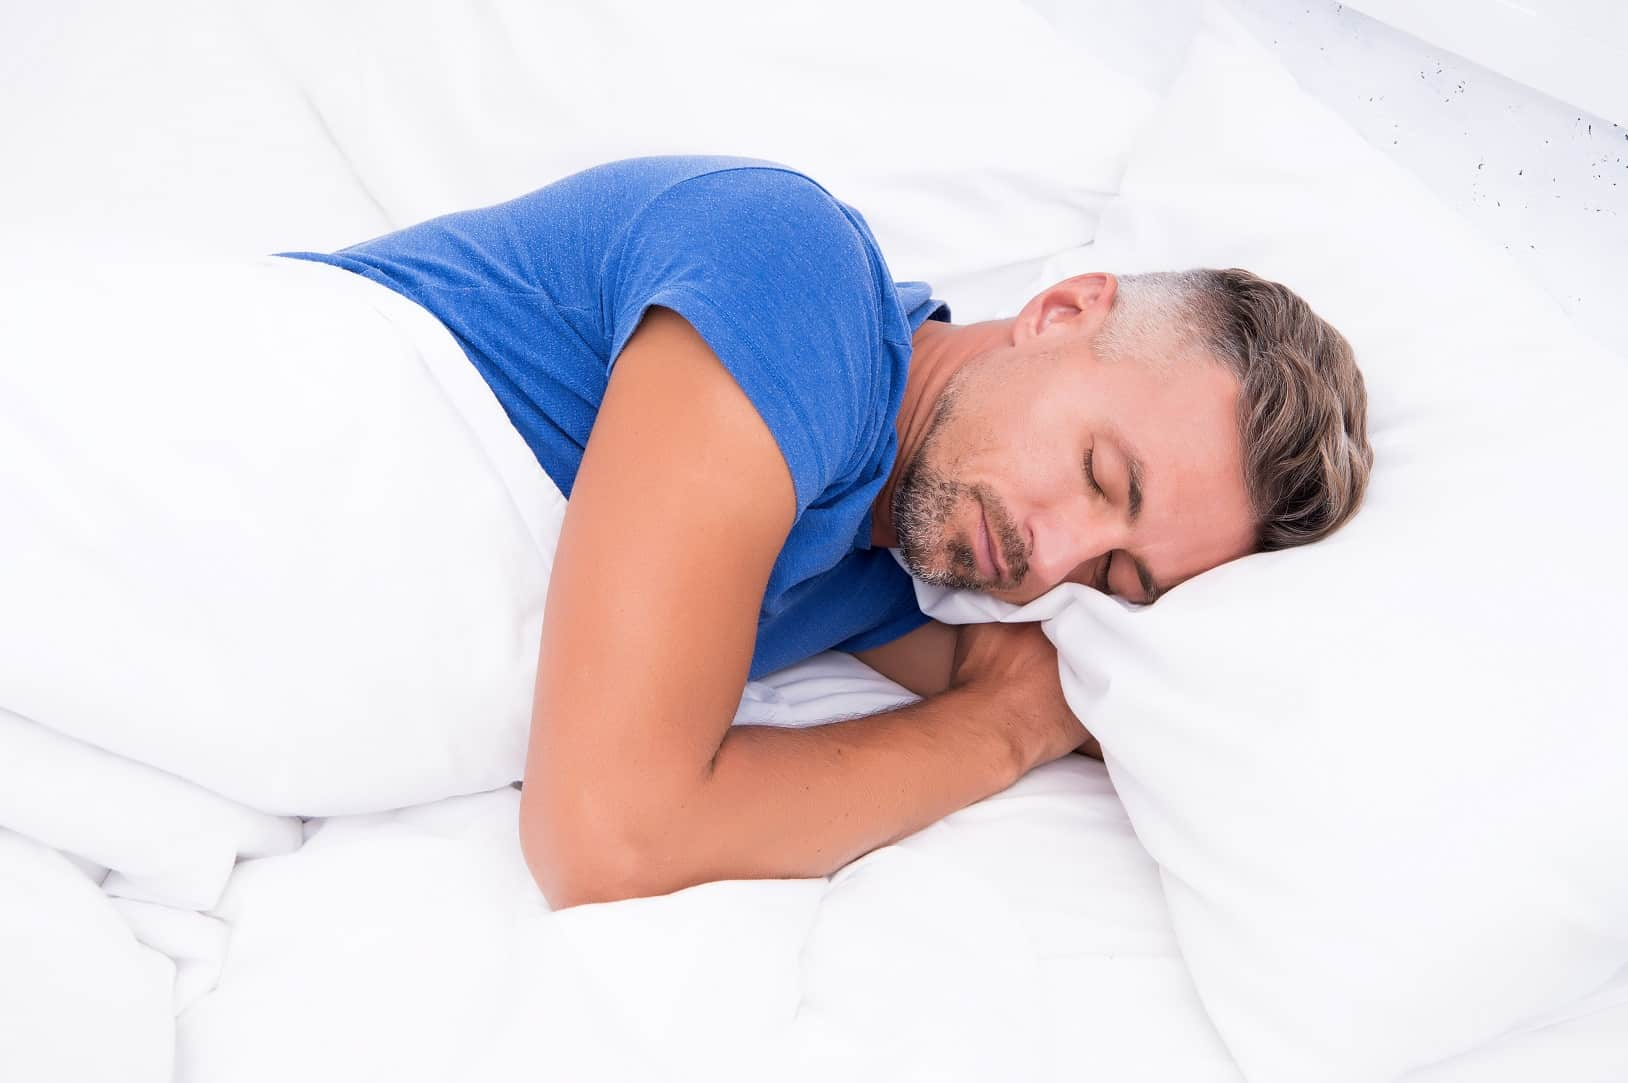 Trouble Sleeping? Here's How To Promote Better Sleep. Sleeping man in the blue shirt